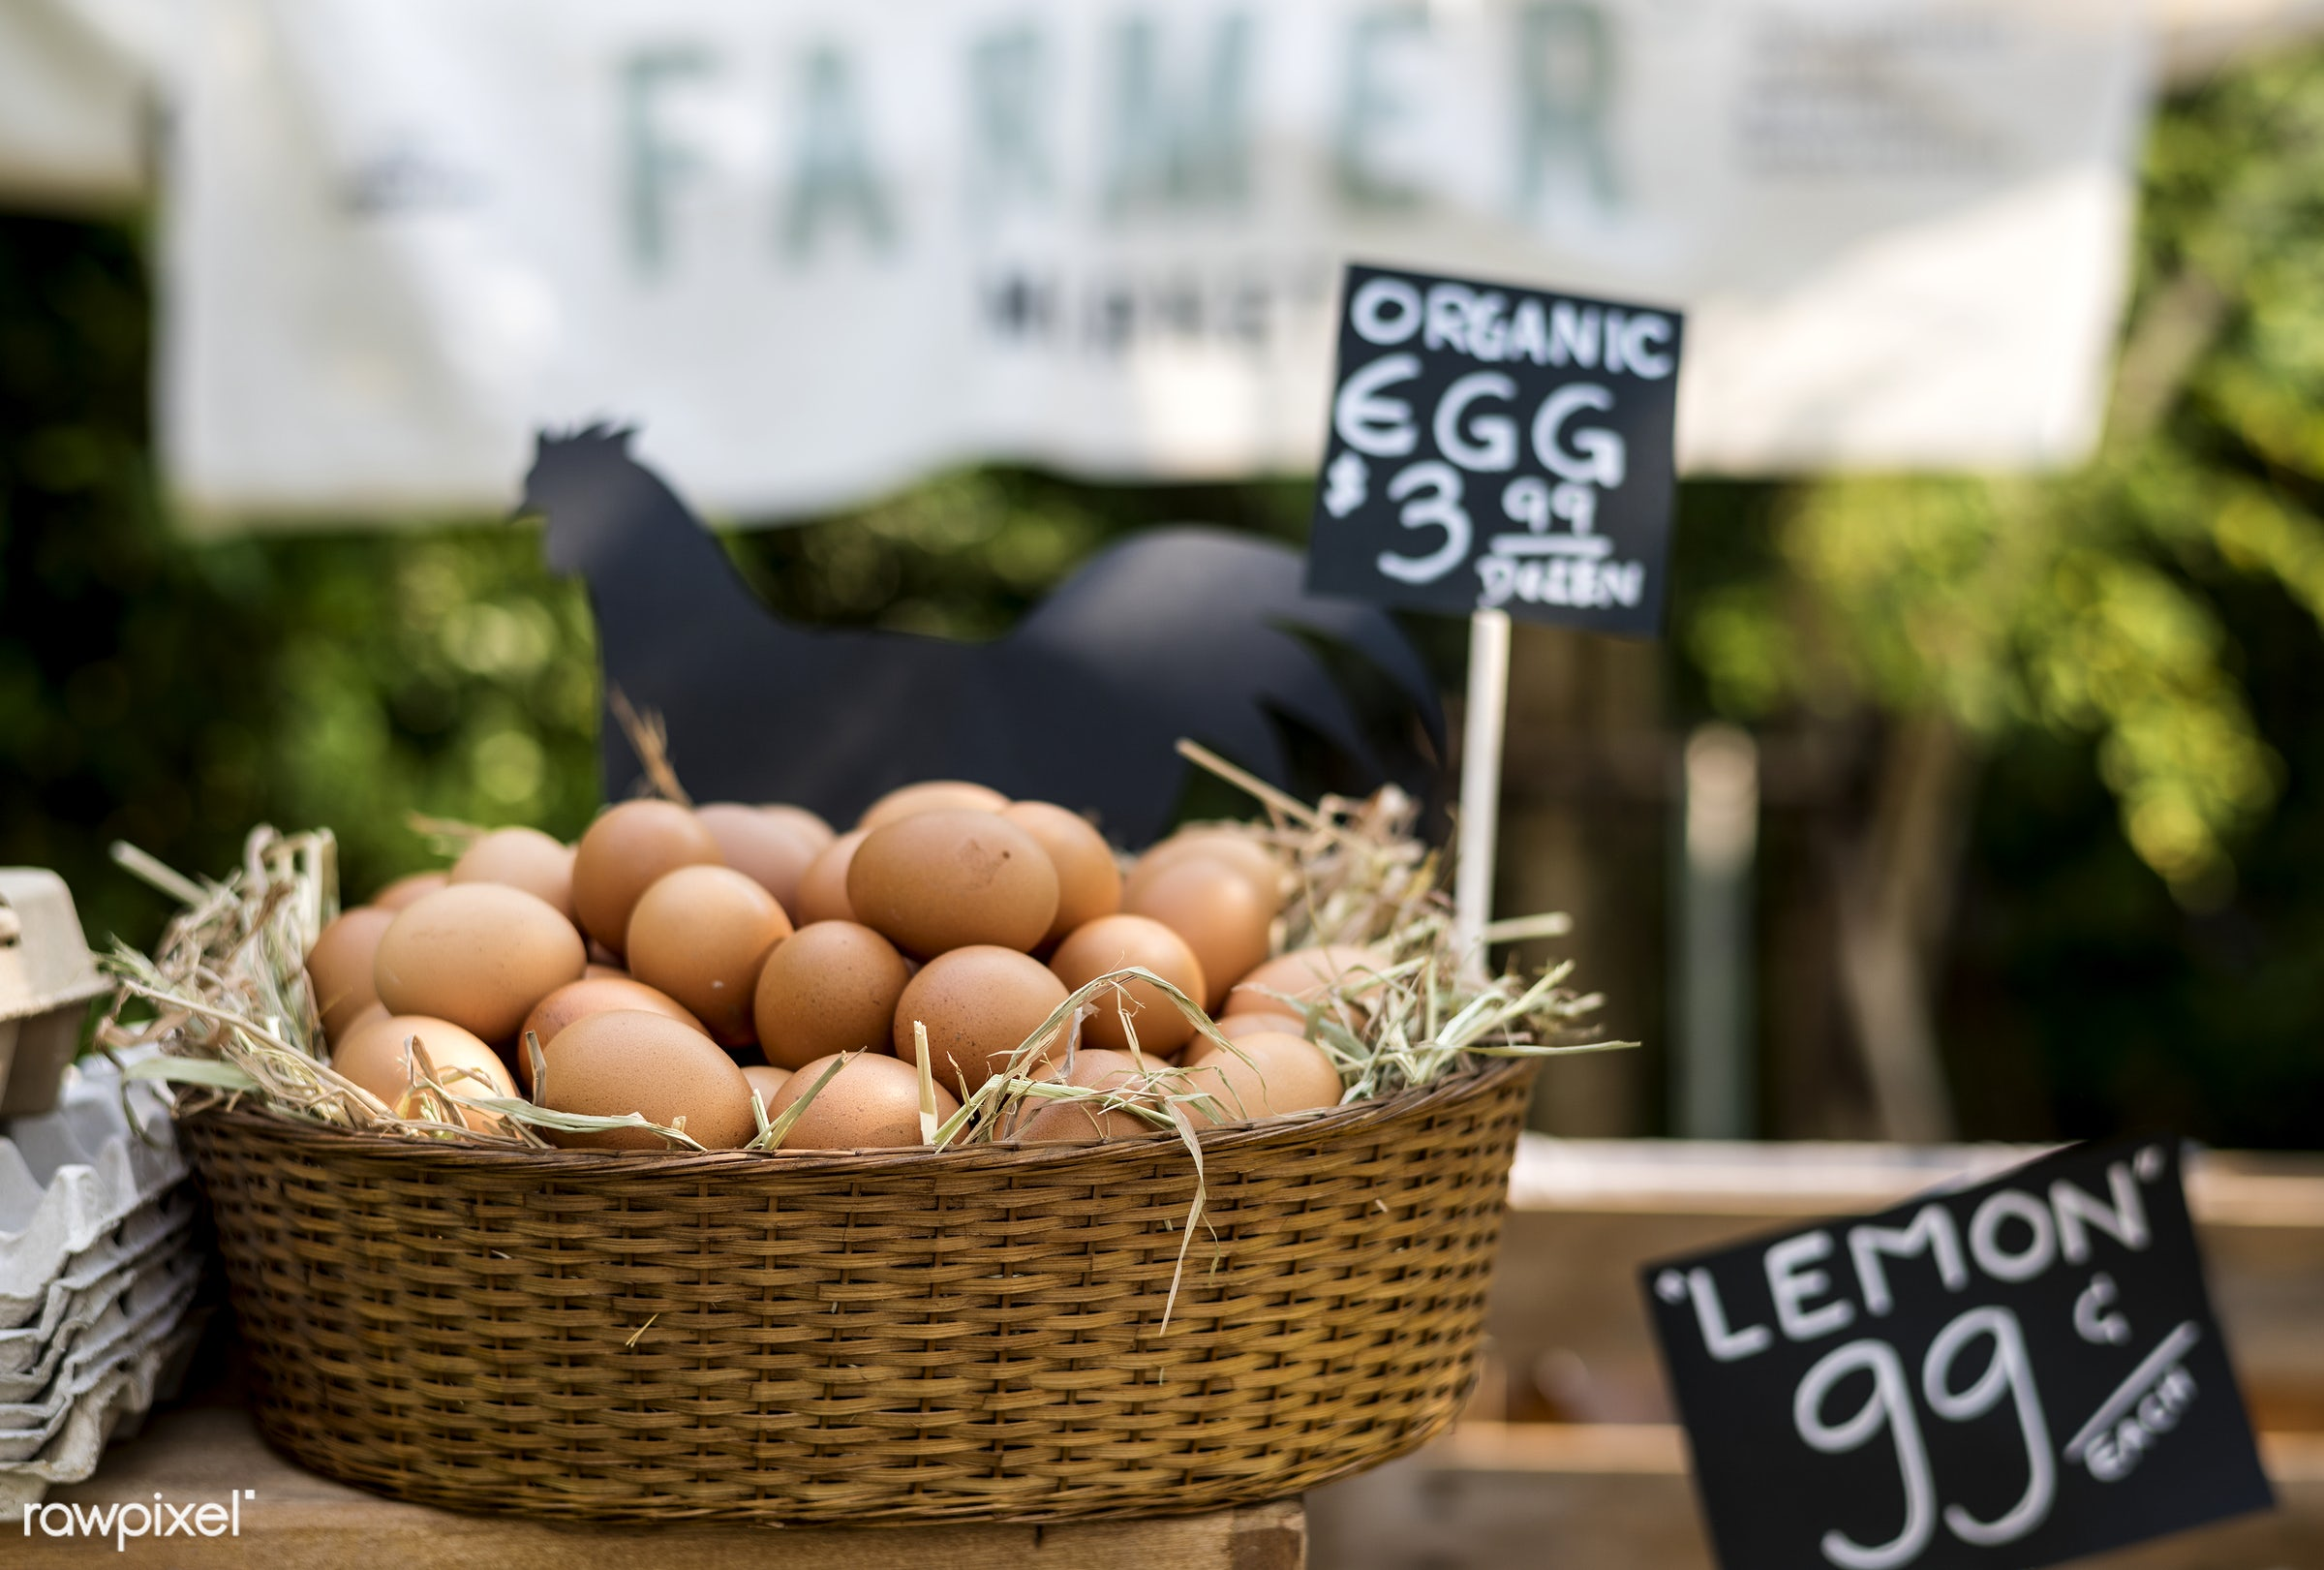 grocery, shop, store, nutritious, egg, farmer, fresh, healthy eating, marketplace, selling, agriculture, greengrocer,...